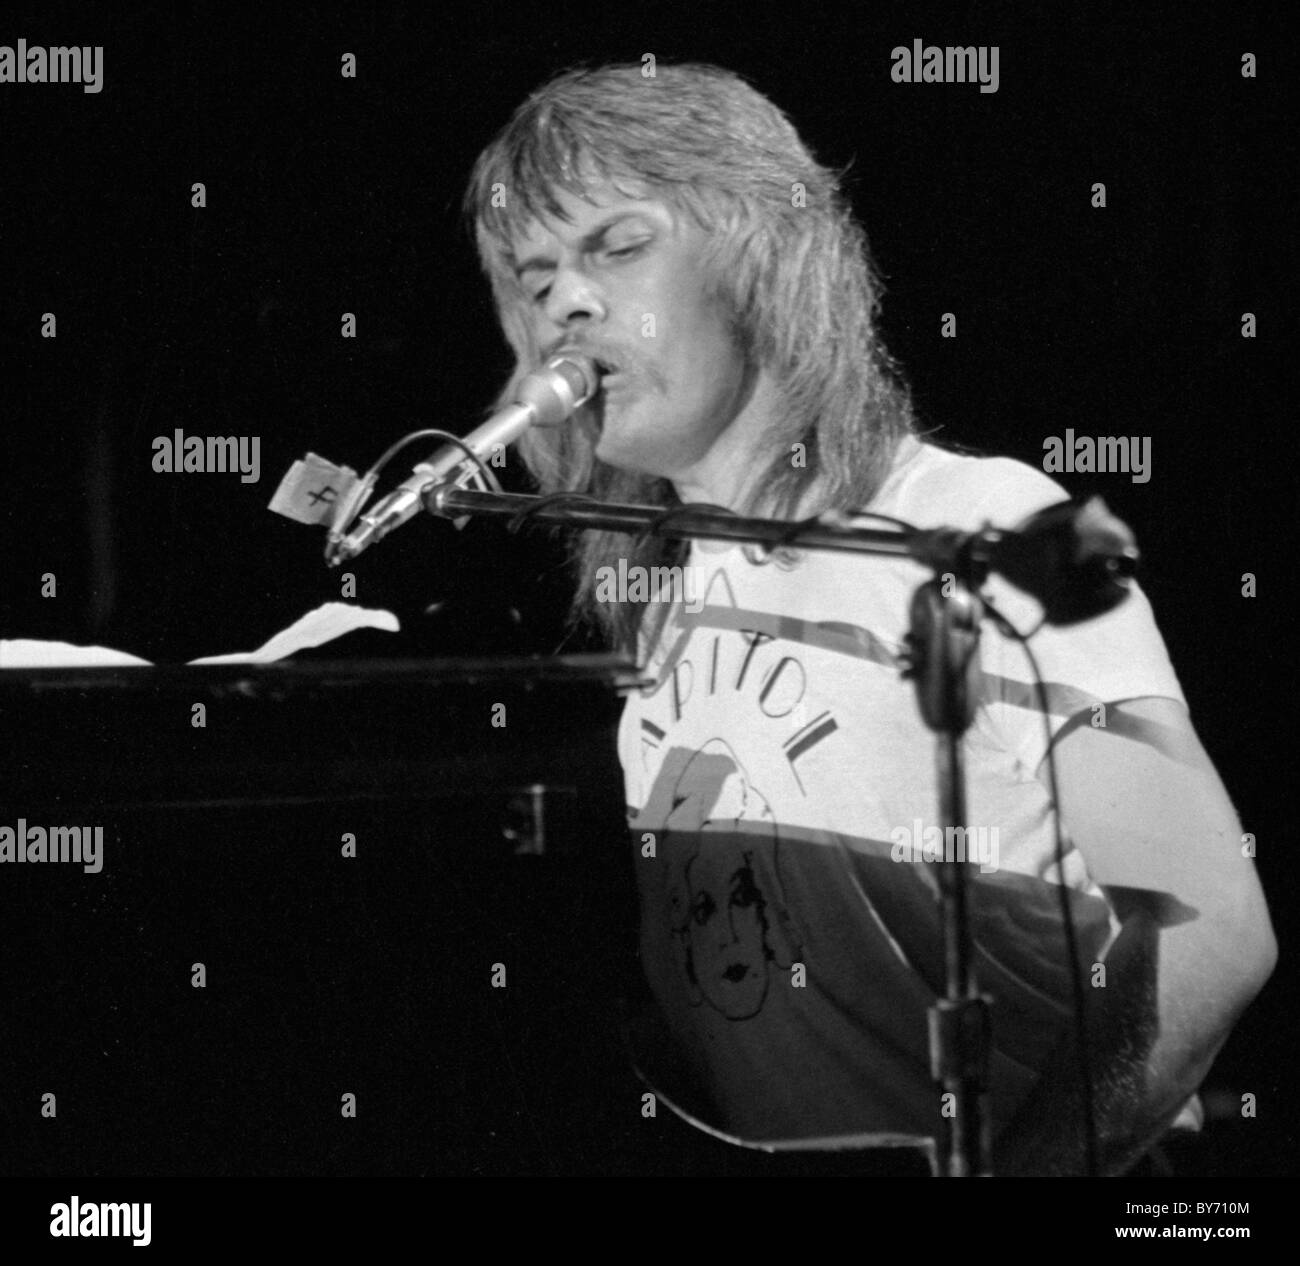 Leon Russell Stock Photos & Leon Russell Stock Images - Alamy